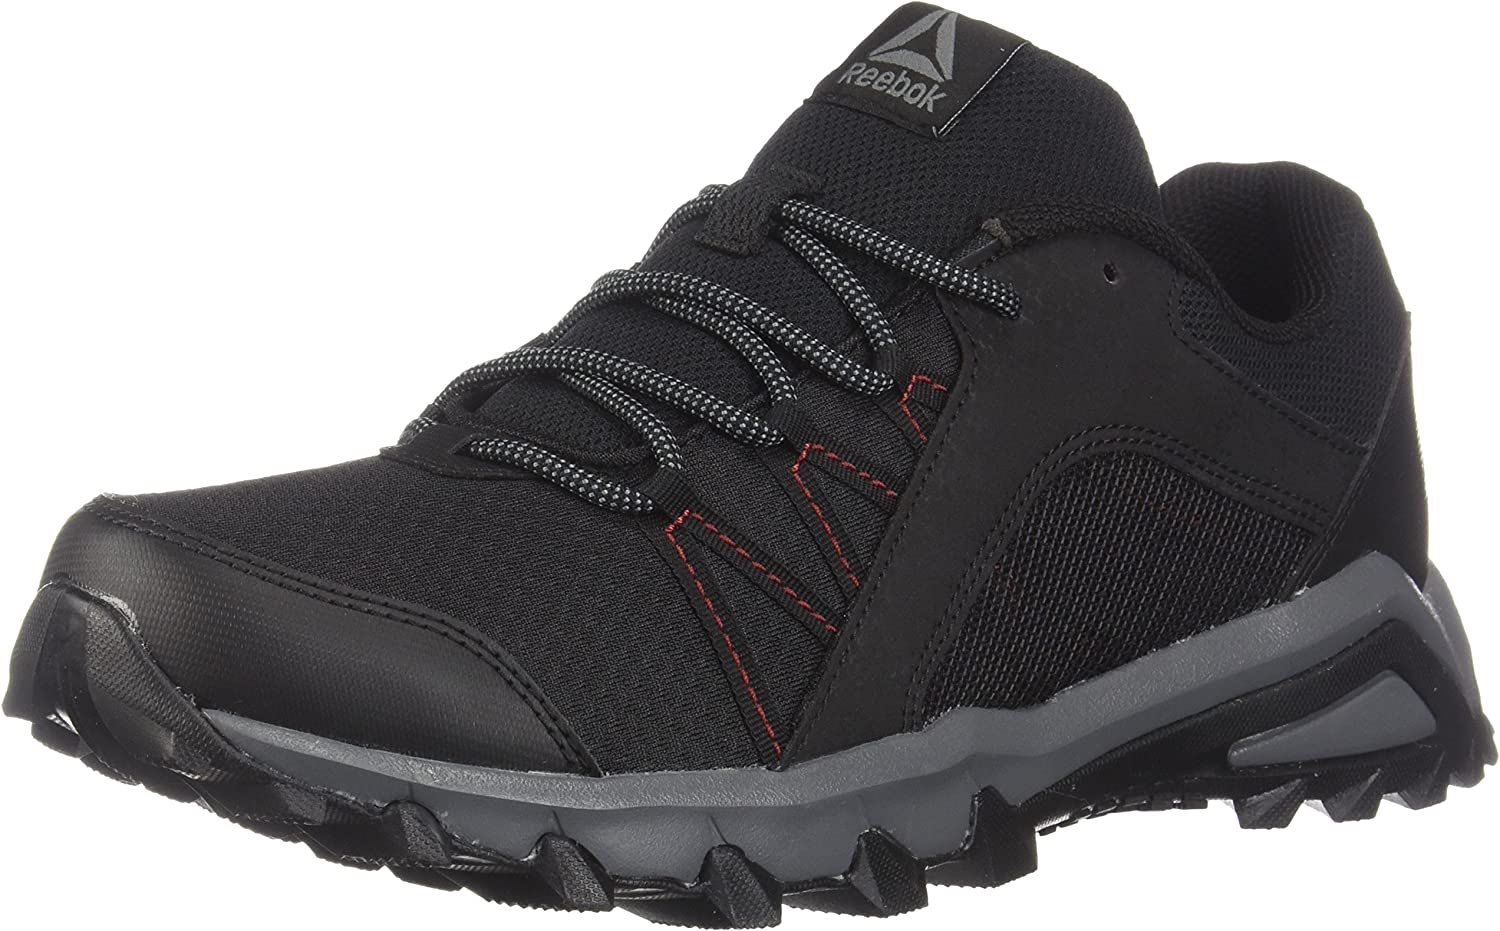 Reebok Men's Trailgrip 6.0 Sneaker